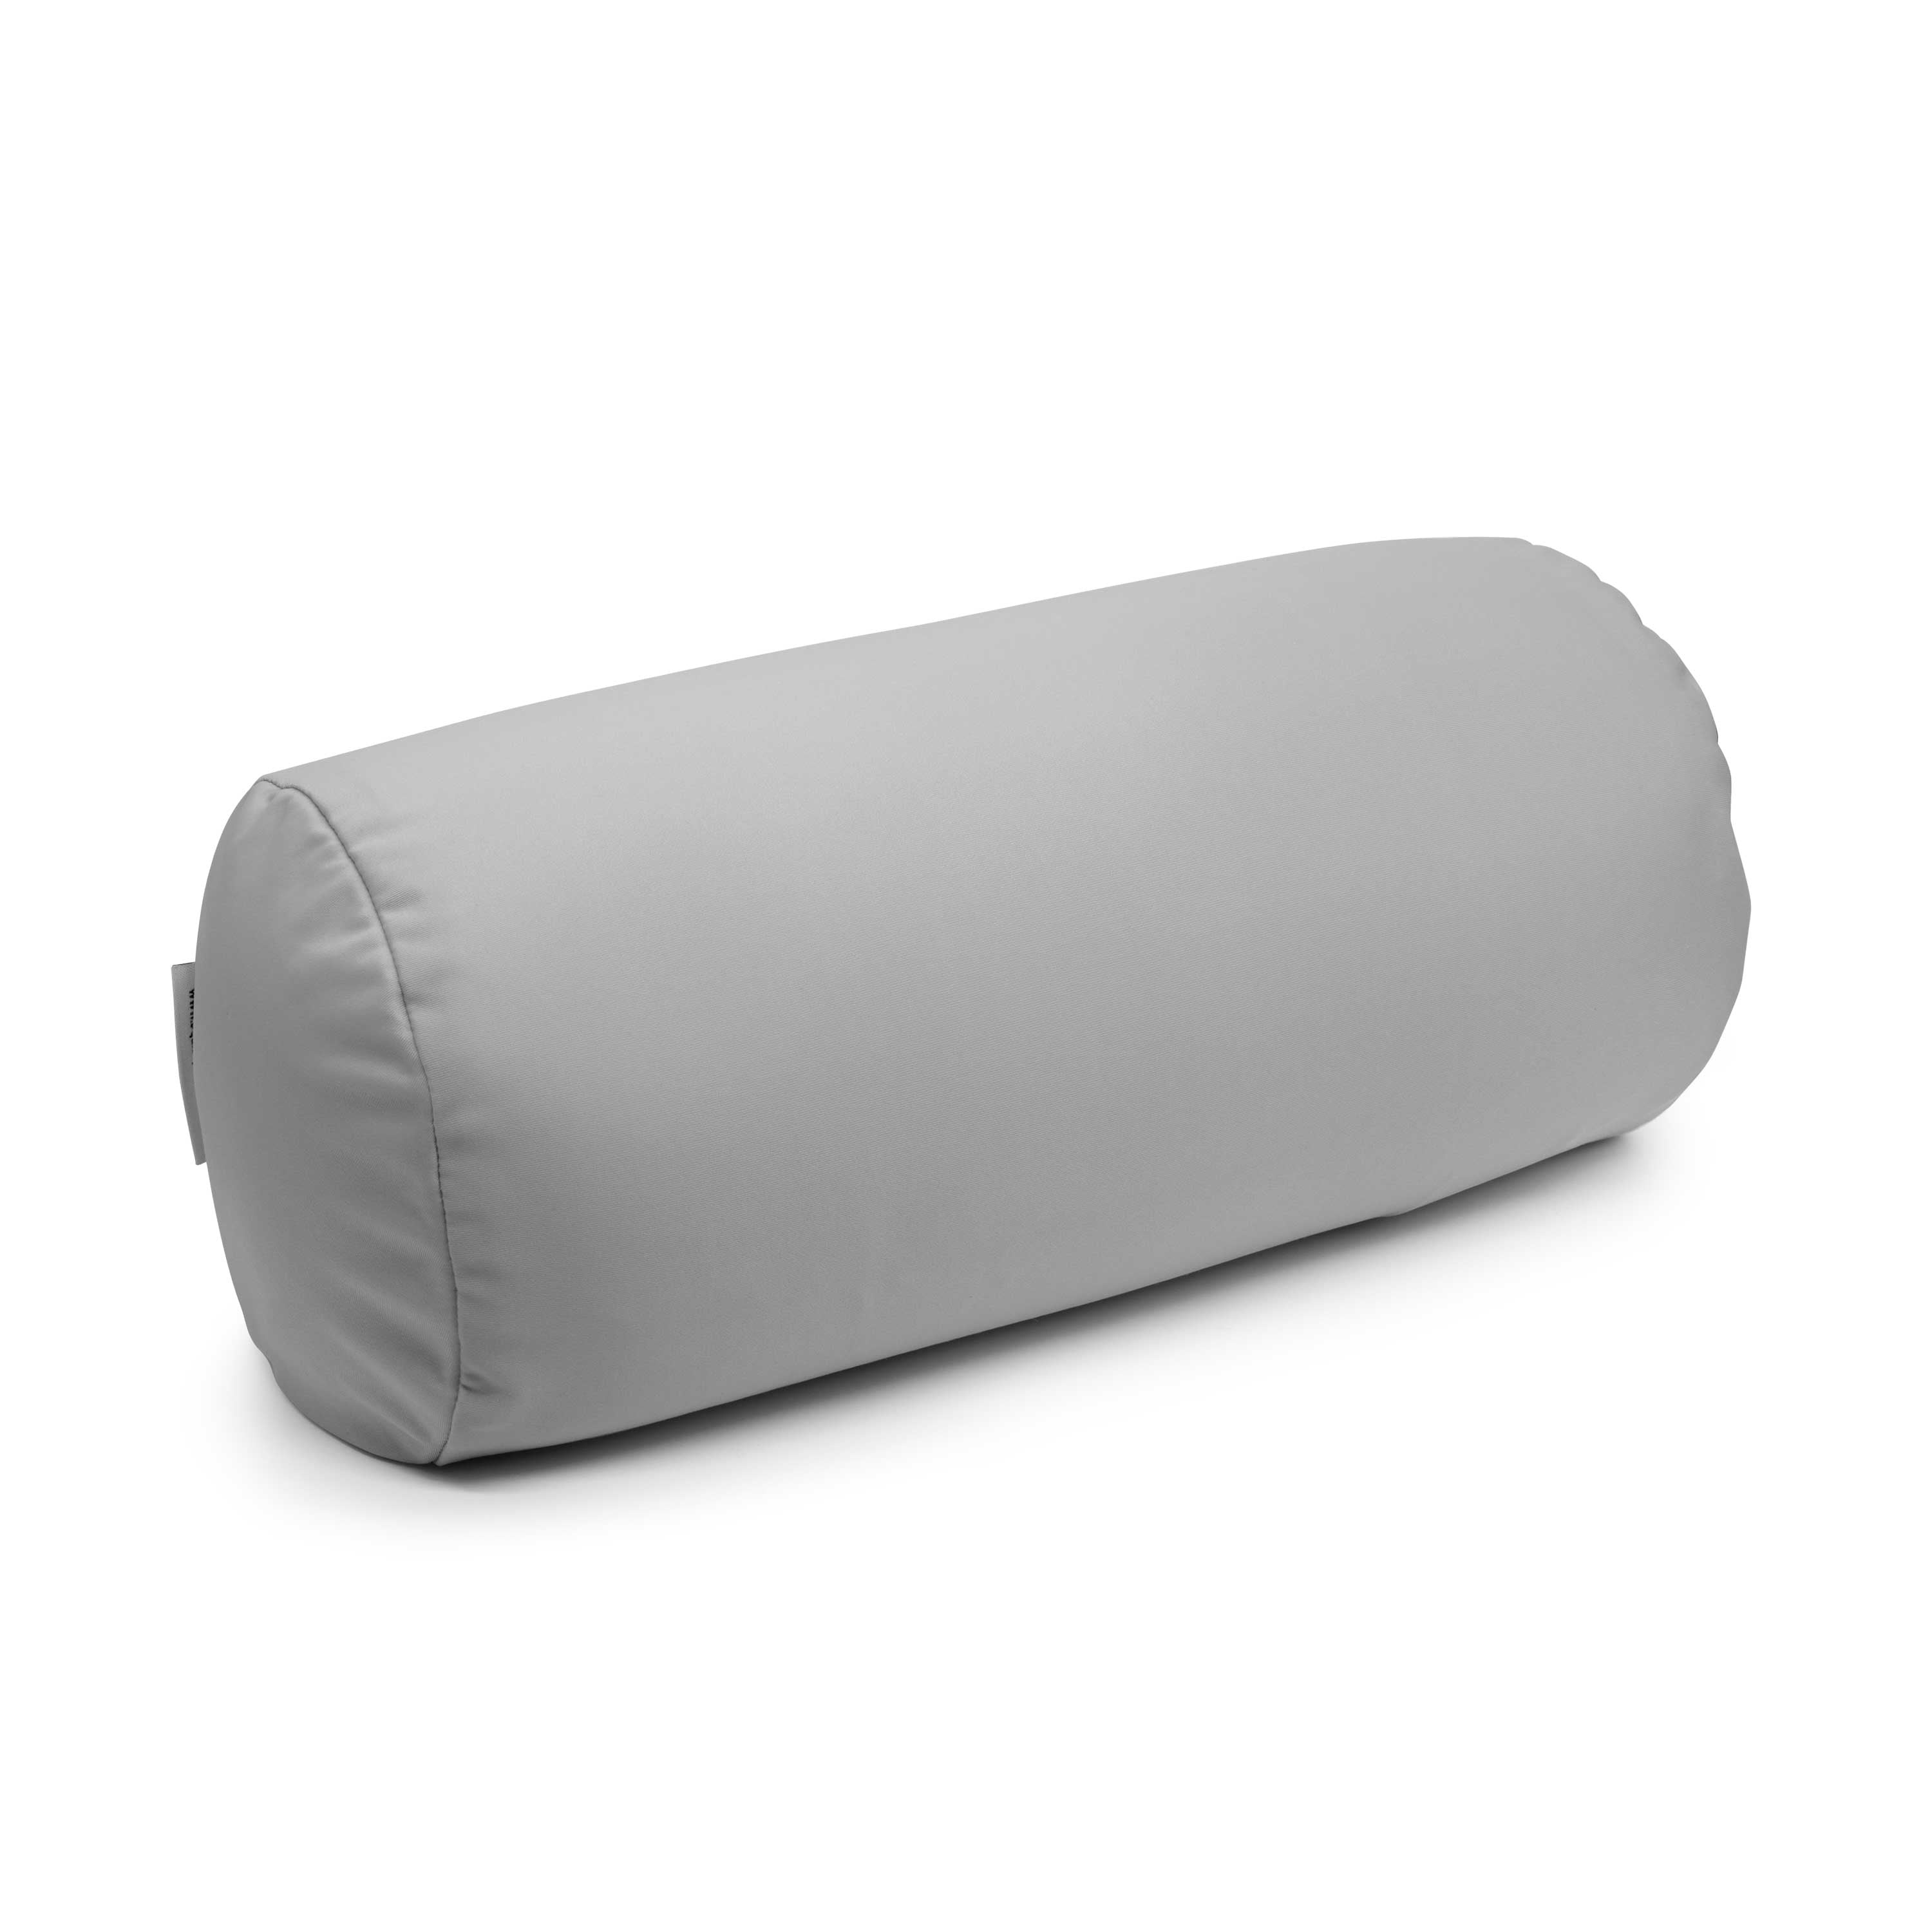 Squishy Deluxe Microbead Bolster Pillow with Removable Cover - Grey